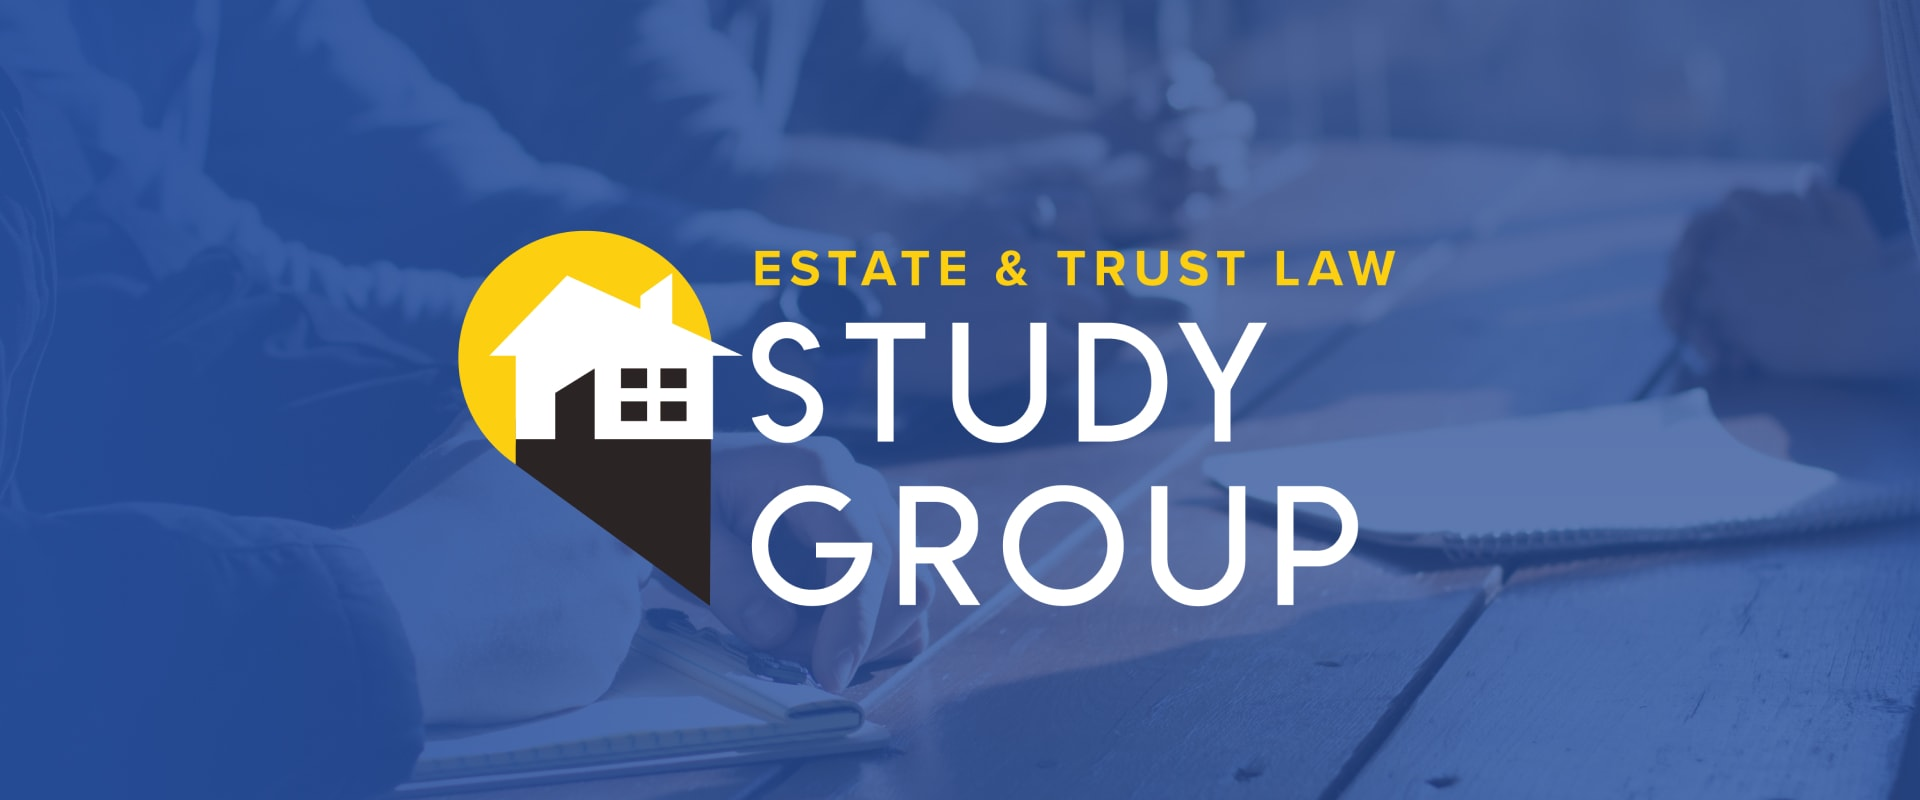 Estate & Trust Study Group: Alimony, Prenuptial Agreements, and Trusts Under the 2017 Tax Act (BETHESDA)